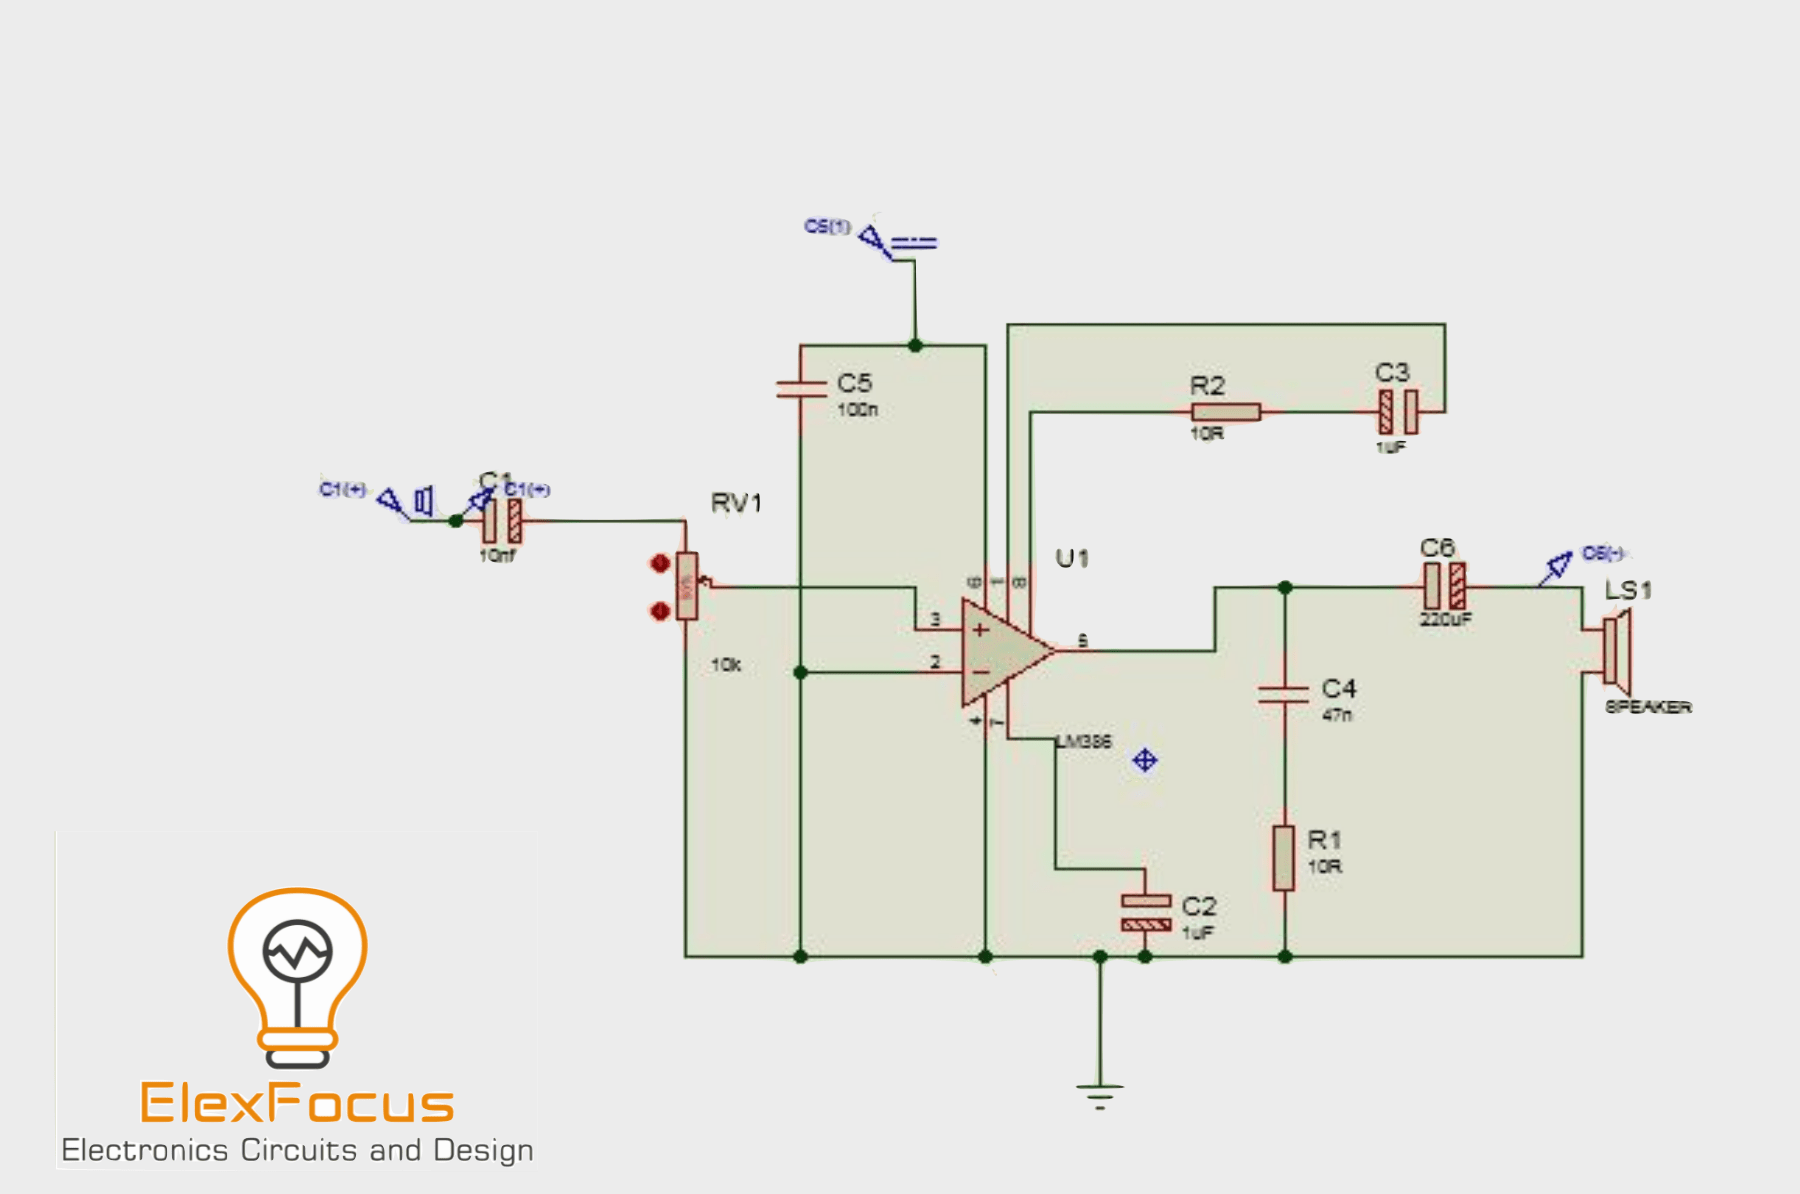 Lm386 Audio Amplifier Circuit With Proteus Simulation Elex Focus The 555 Bistable Electronics In Meccano